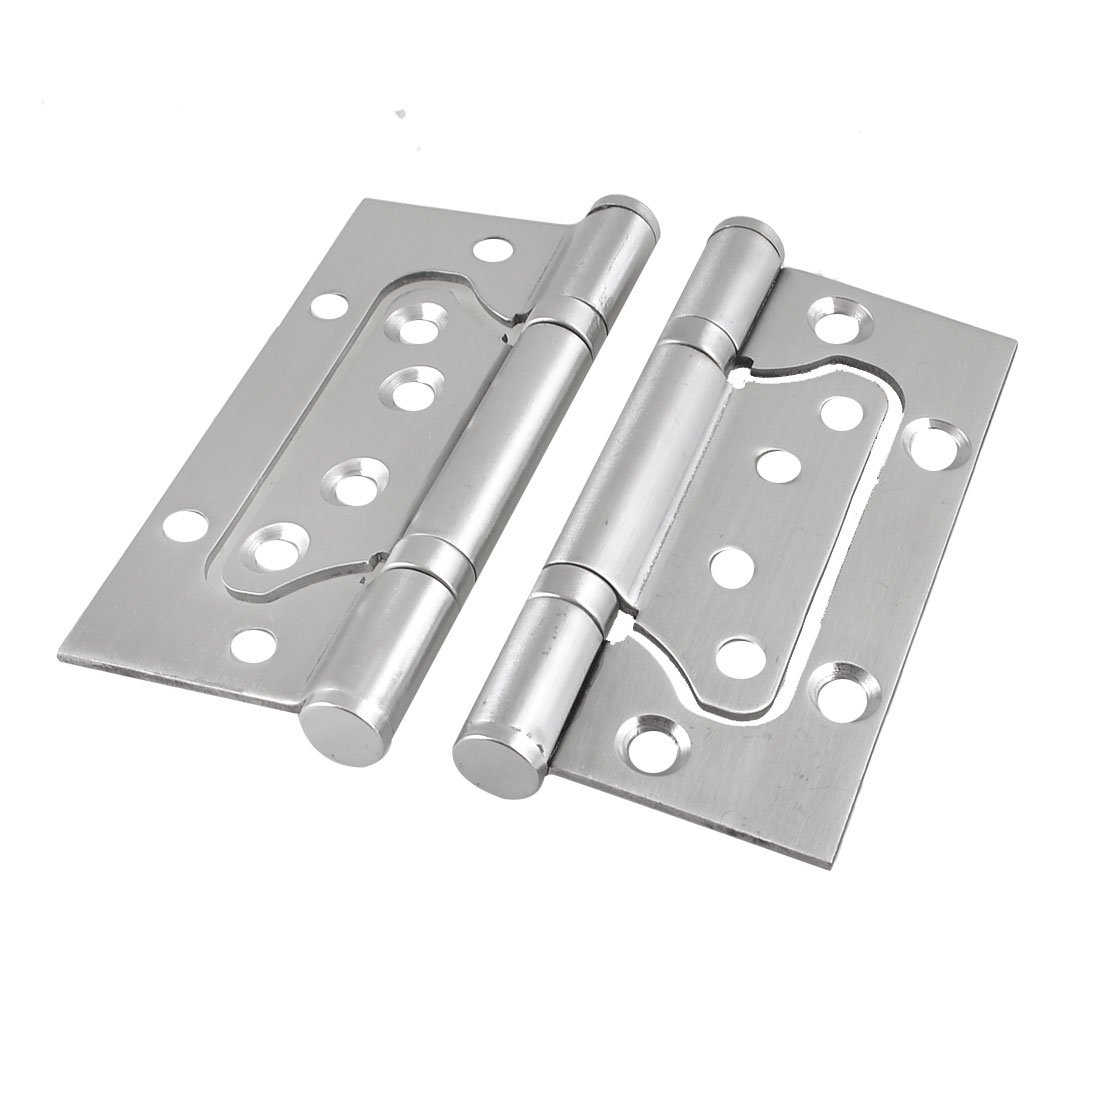 "2 Pcs/lot Silver Tone Omnidirectional Rotatable Closet Door Hinge 4.1"" Long(China (Mainland))"